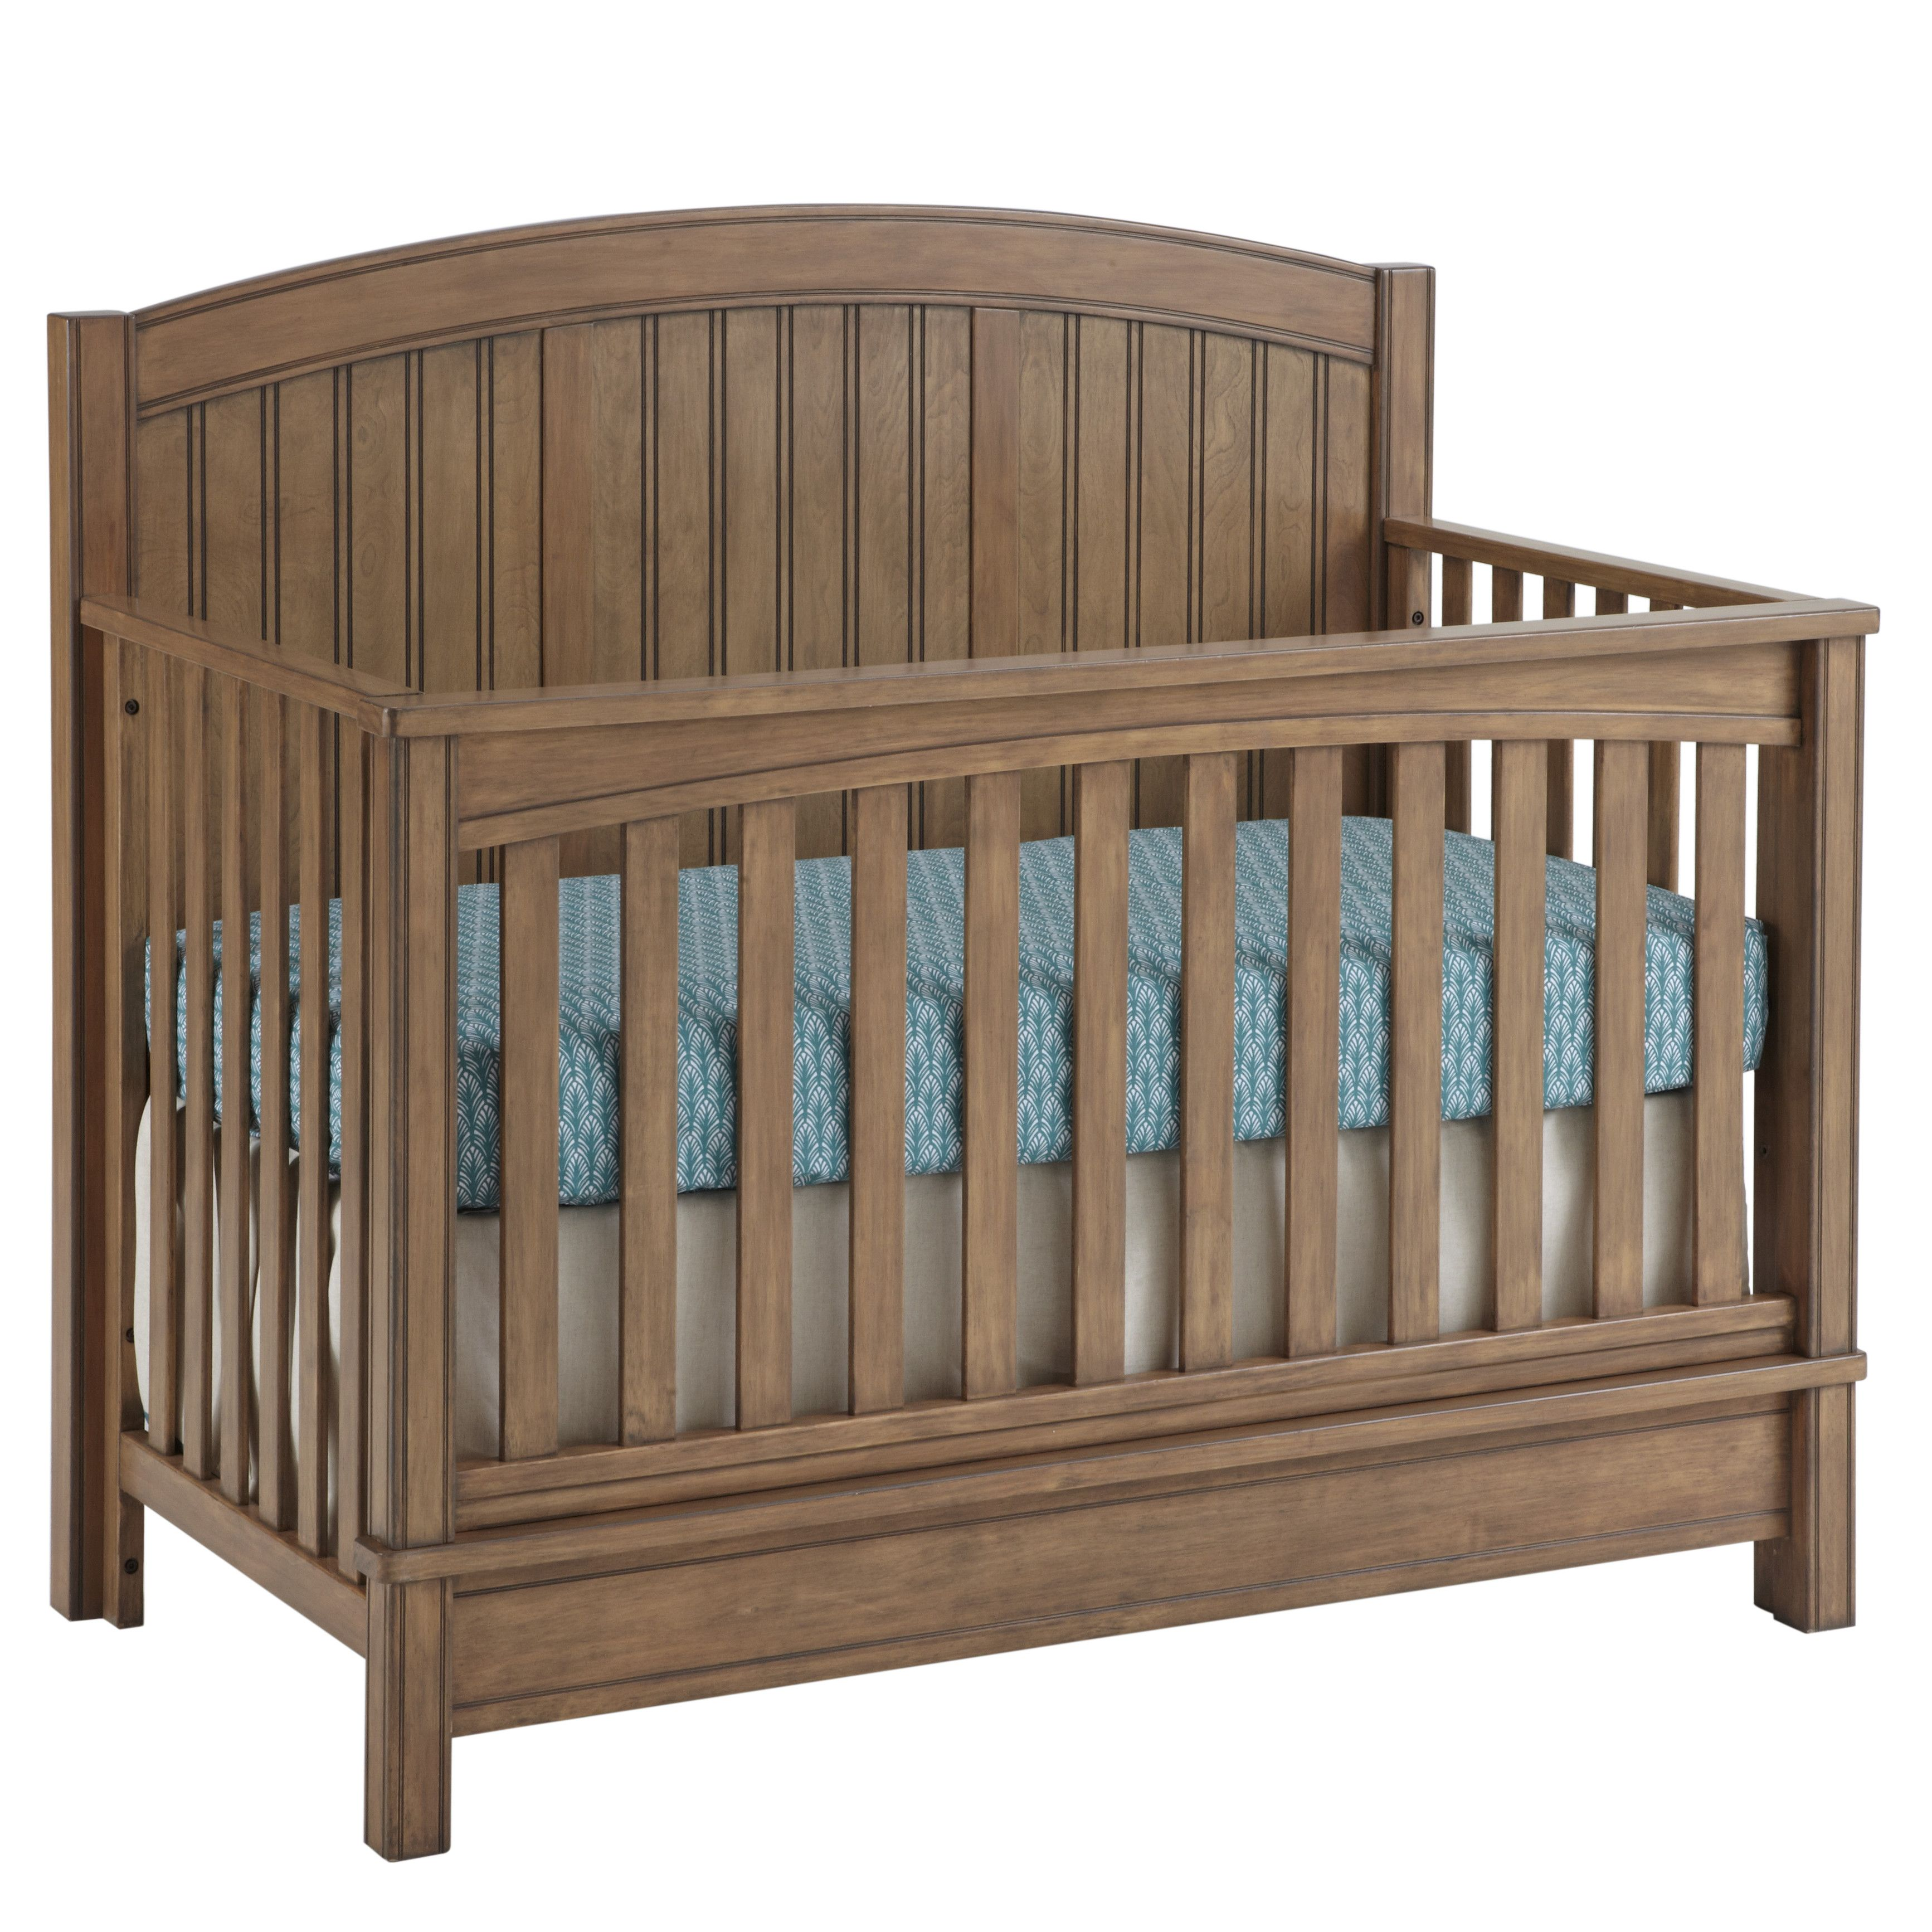 sealy bristol 4 in 1 convertible crib baby and toddler bedrooms pinterest full size. Black Bedroom Furniture Sets. Home Design Ideas